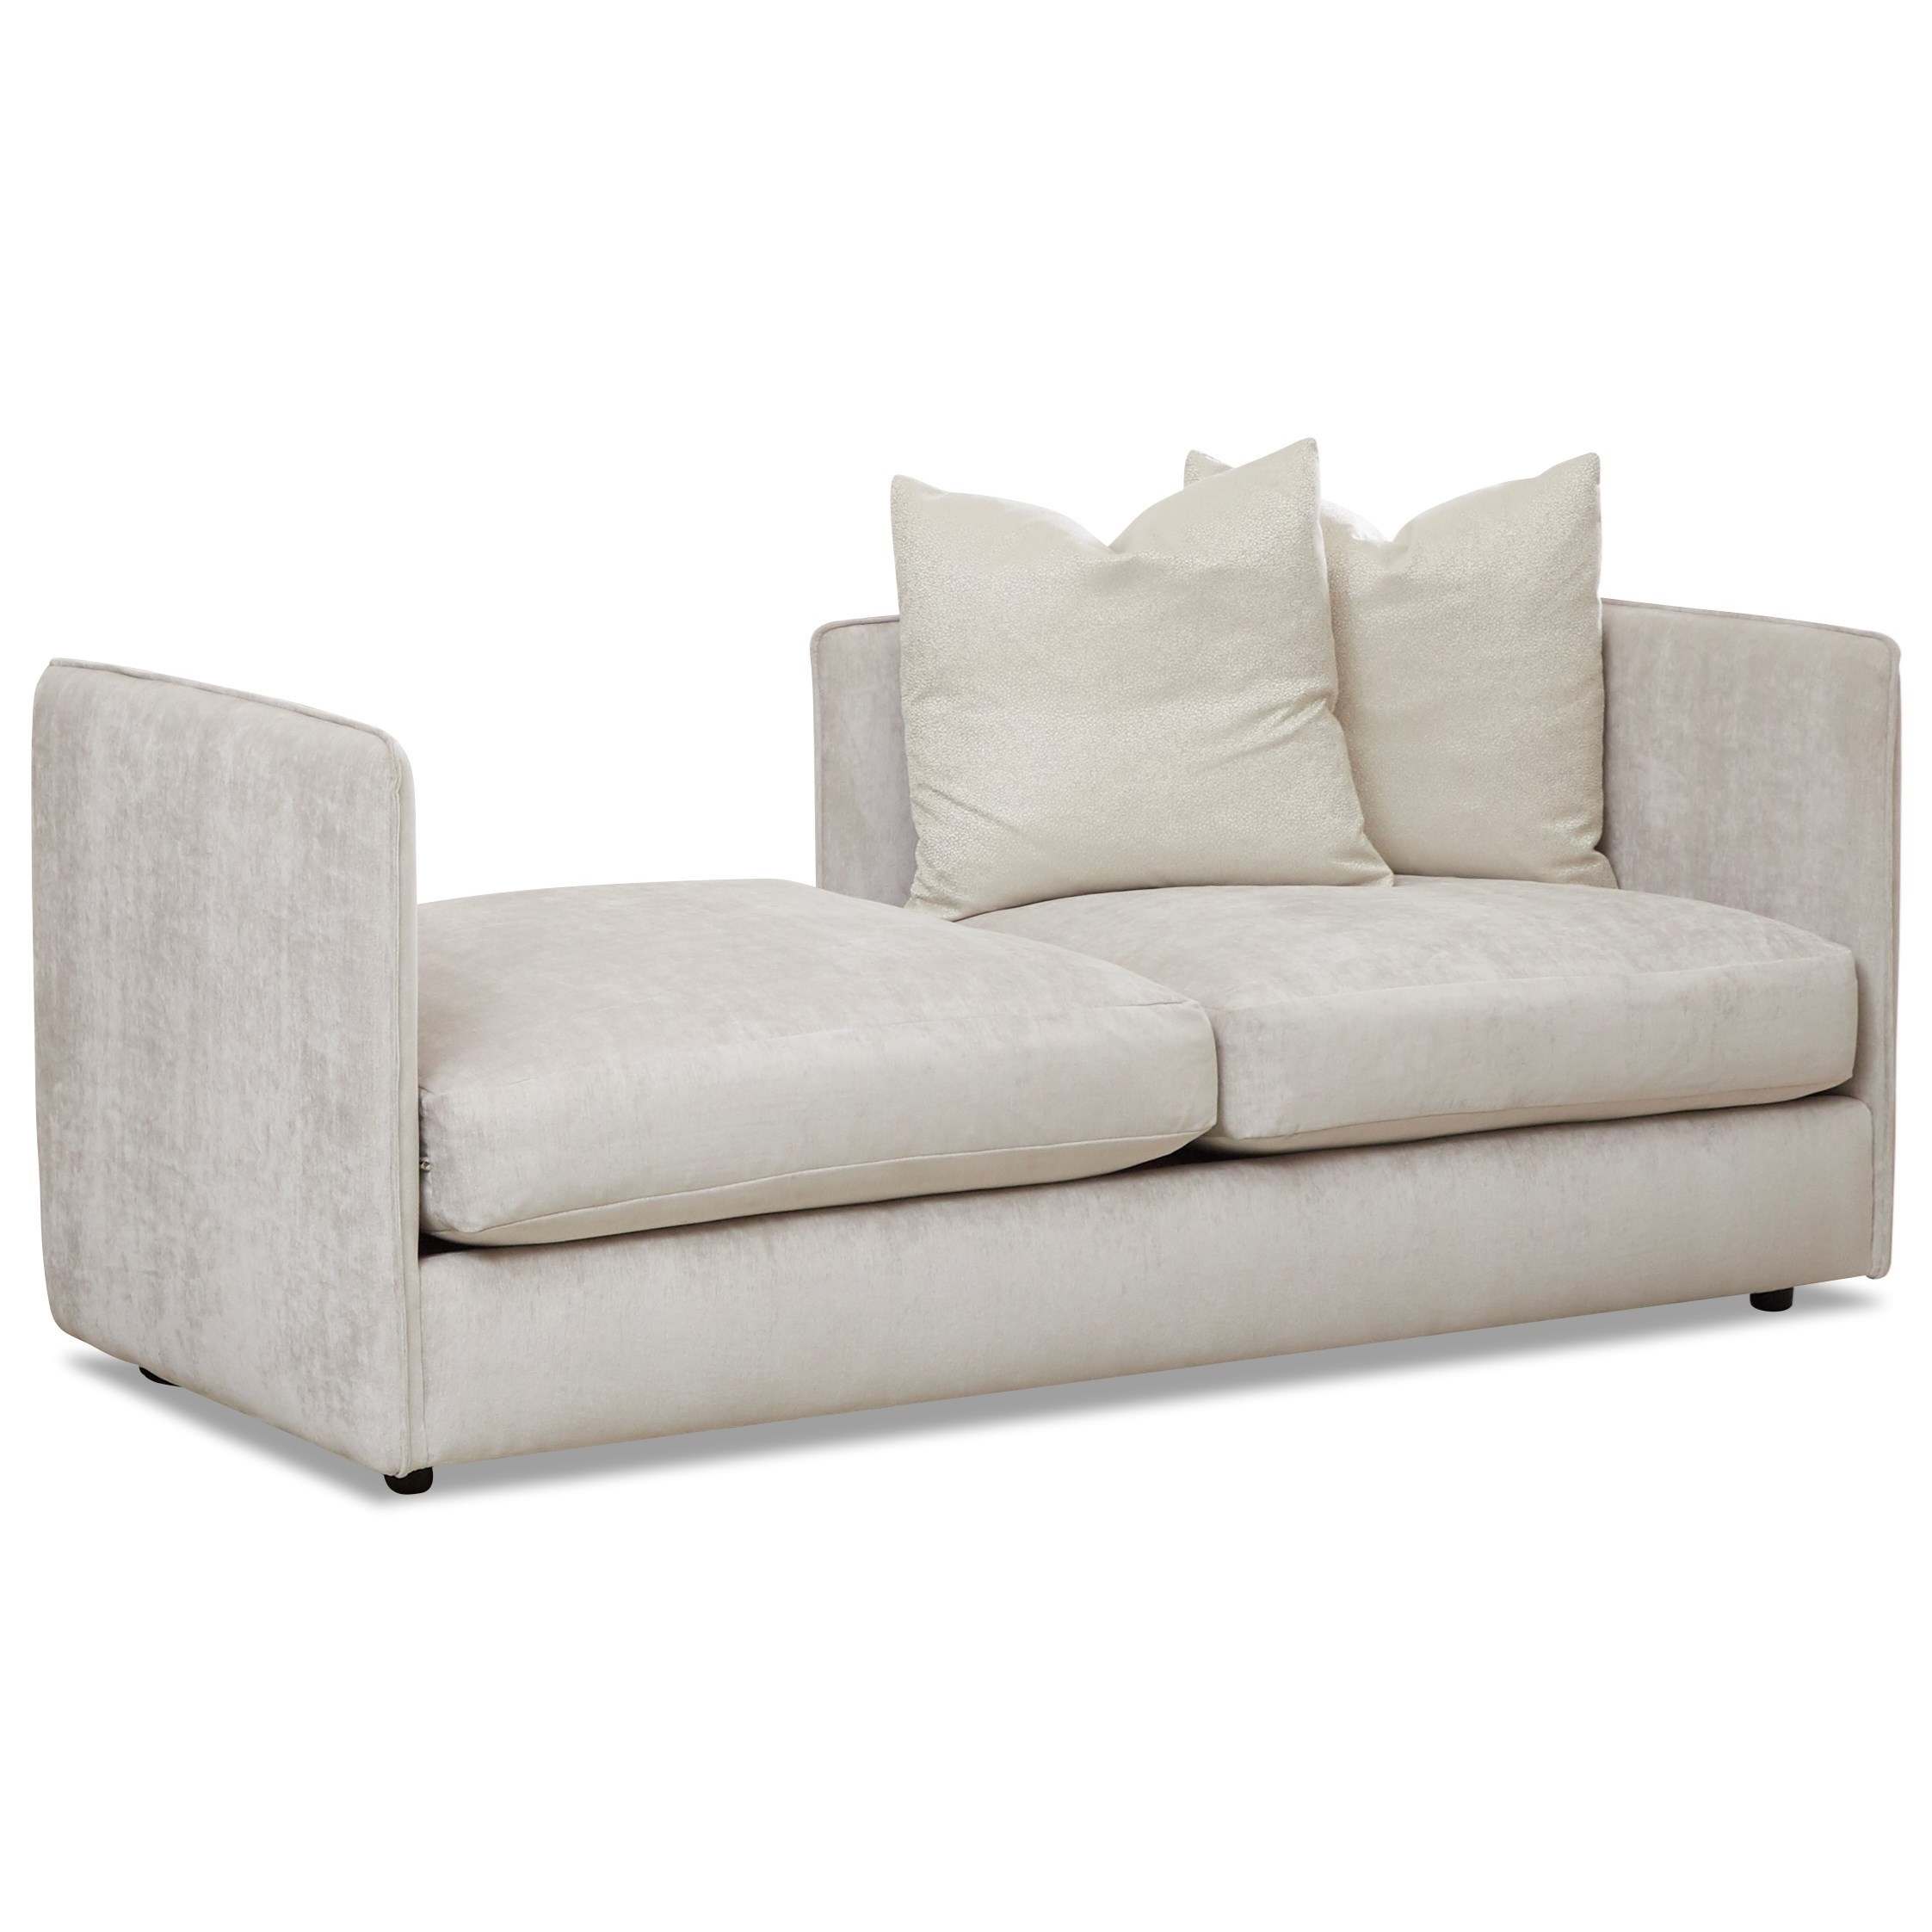 Ansel Chaise Lounge by Klaussner at Catalog Outlet